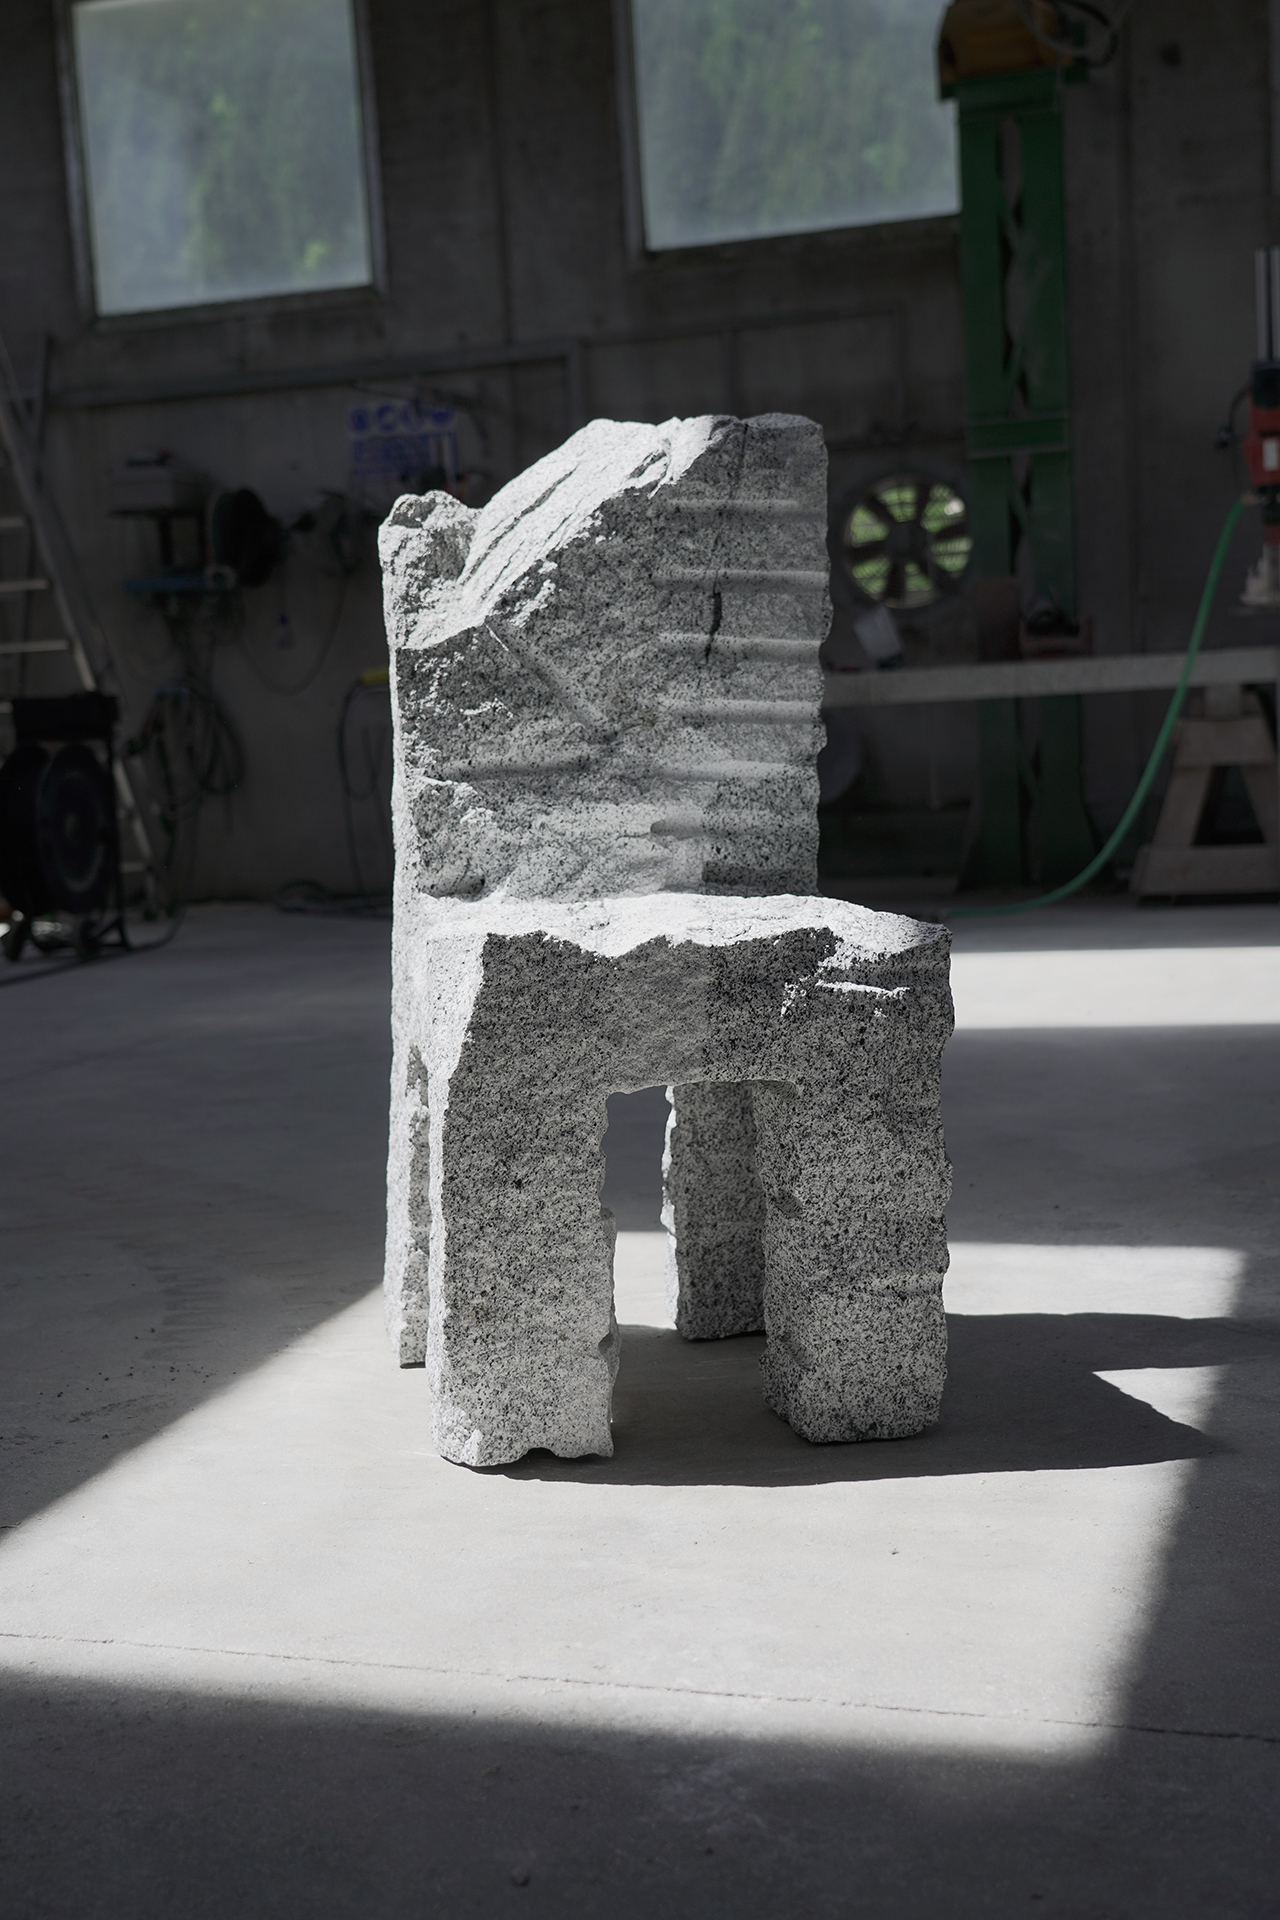 chair made of grey stone